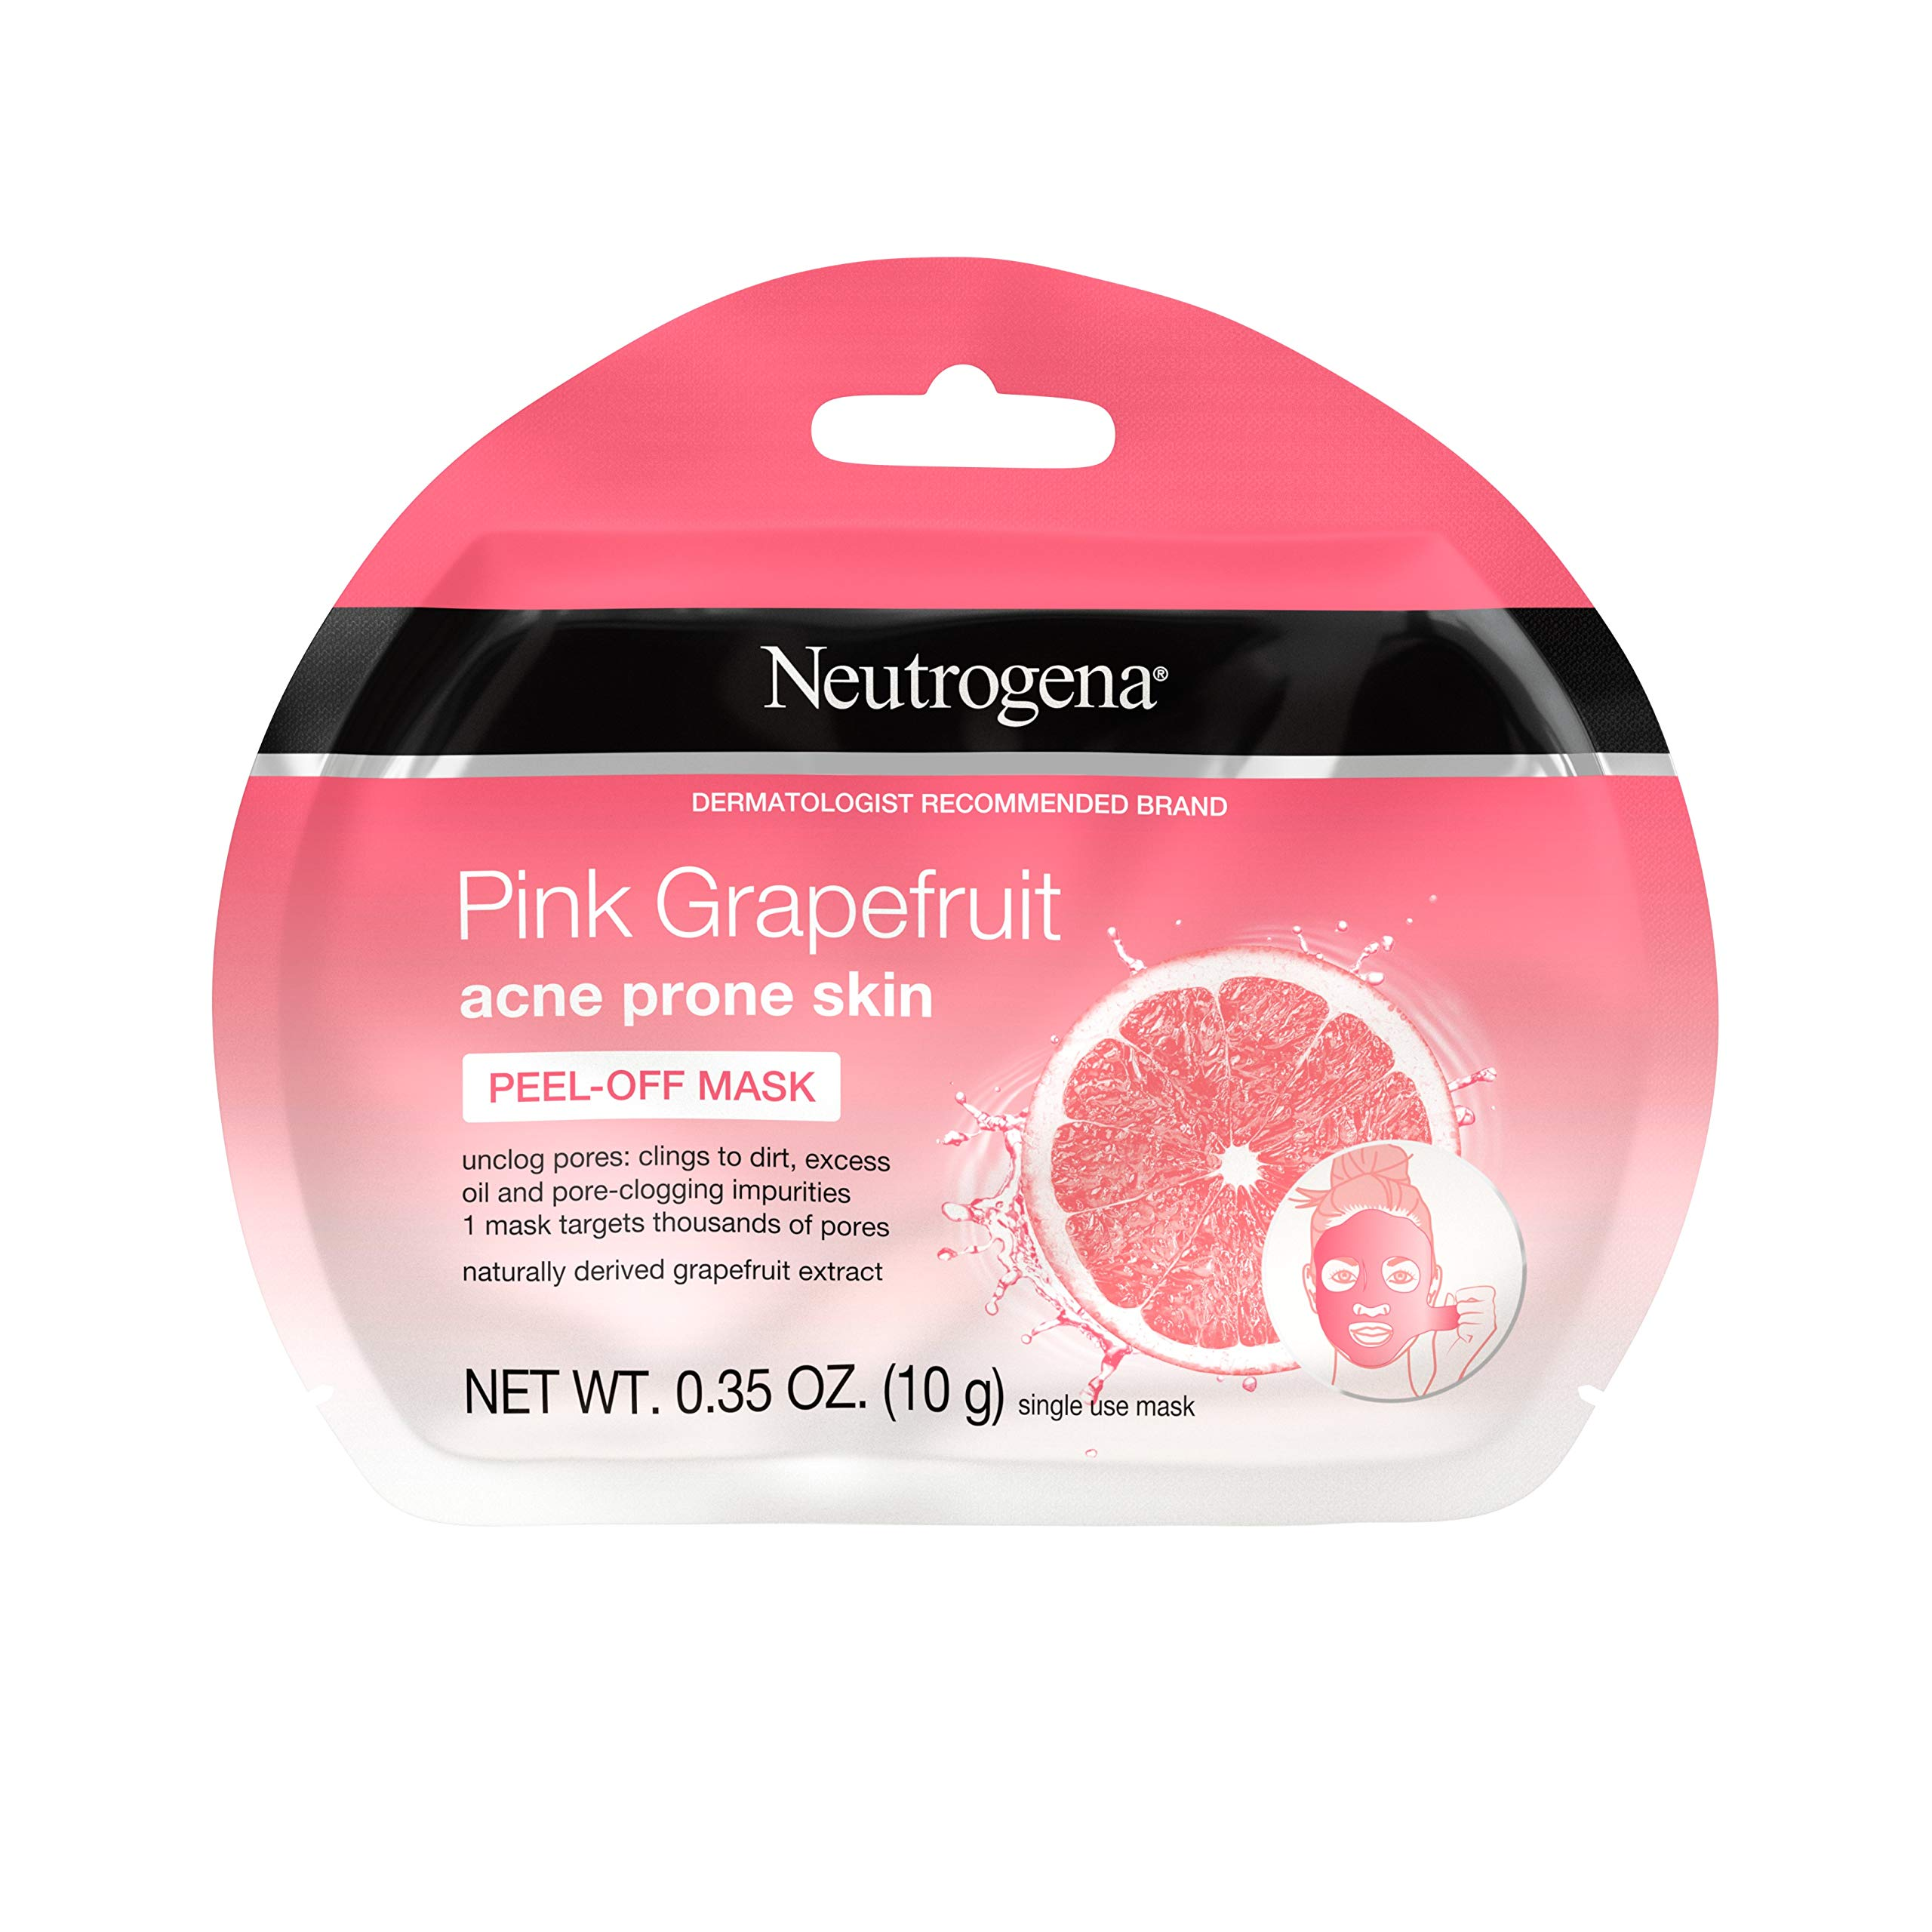 Neutrogena - Neutrogena Pink Grapefruit Peel-Off Face Mask for Acne Prone Skin Grapefruit Extract, Non-Comedogenic & Oil-Free, Single-Use 0.35 oz (Pack of 6)